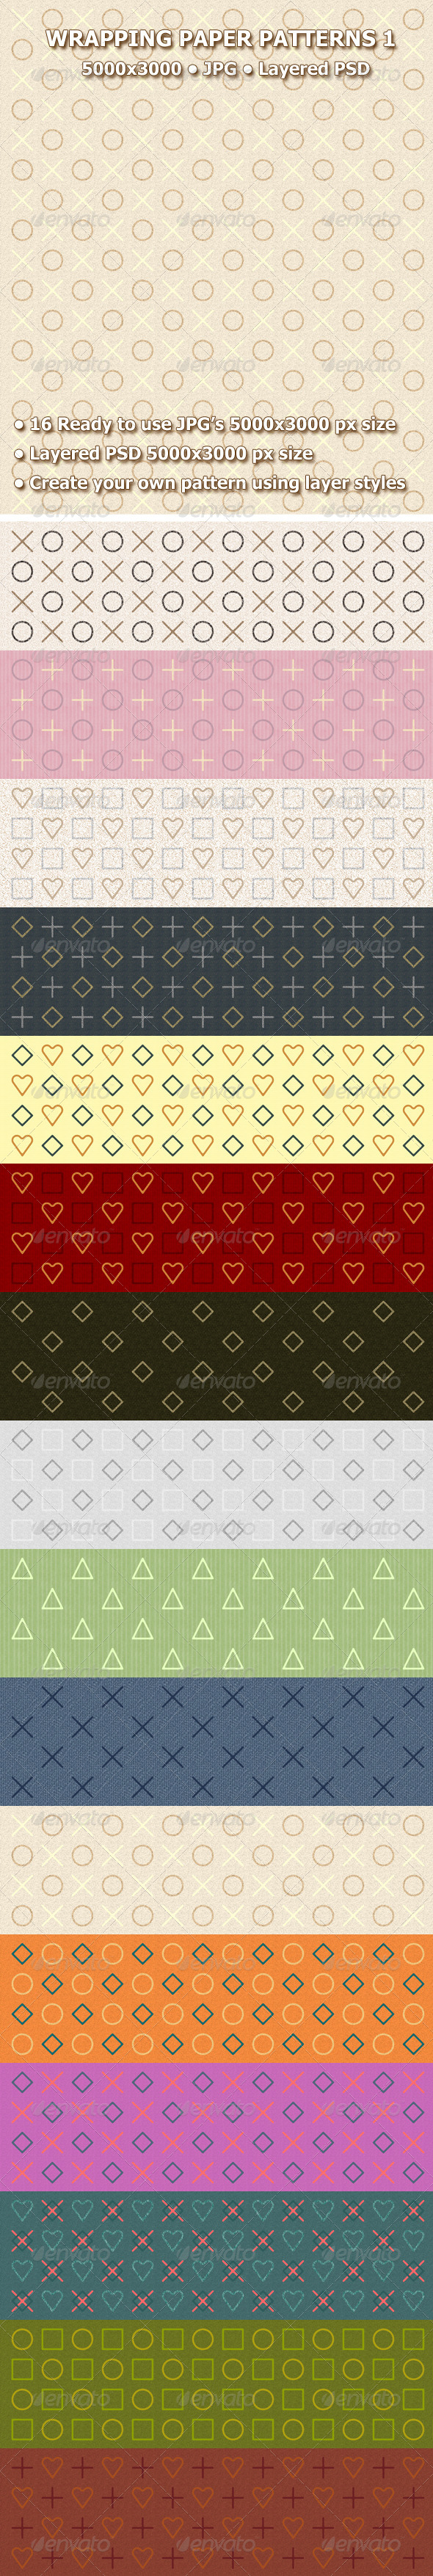 GraphicRiver Wrapping Paper Patterns 1 7516671